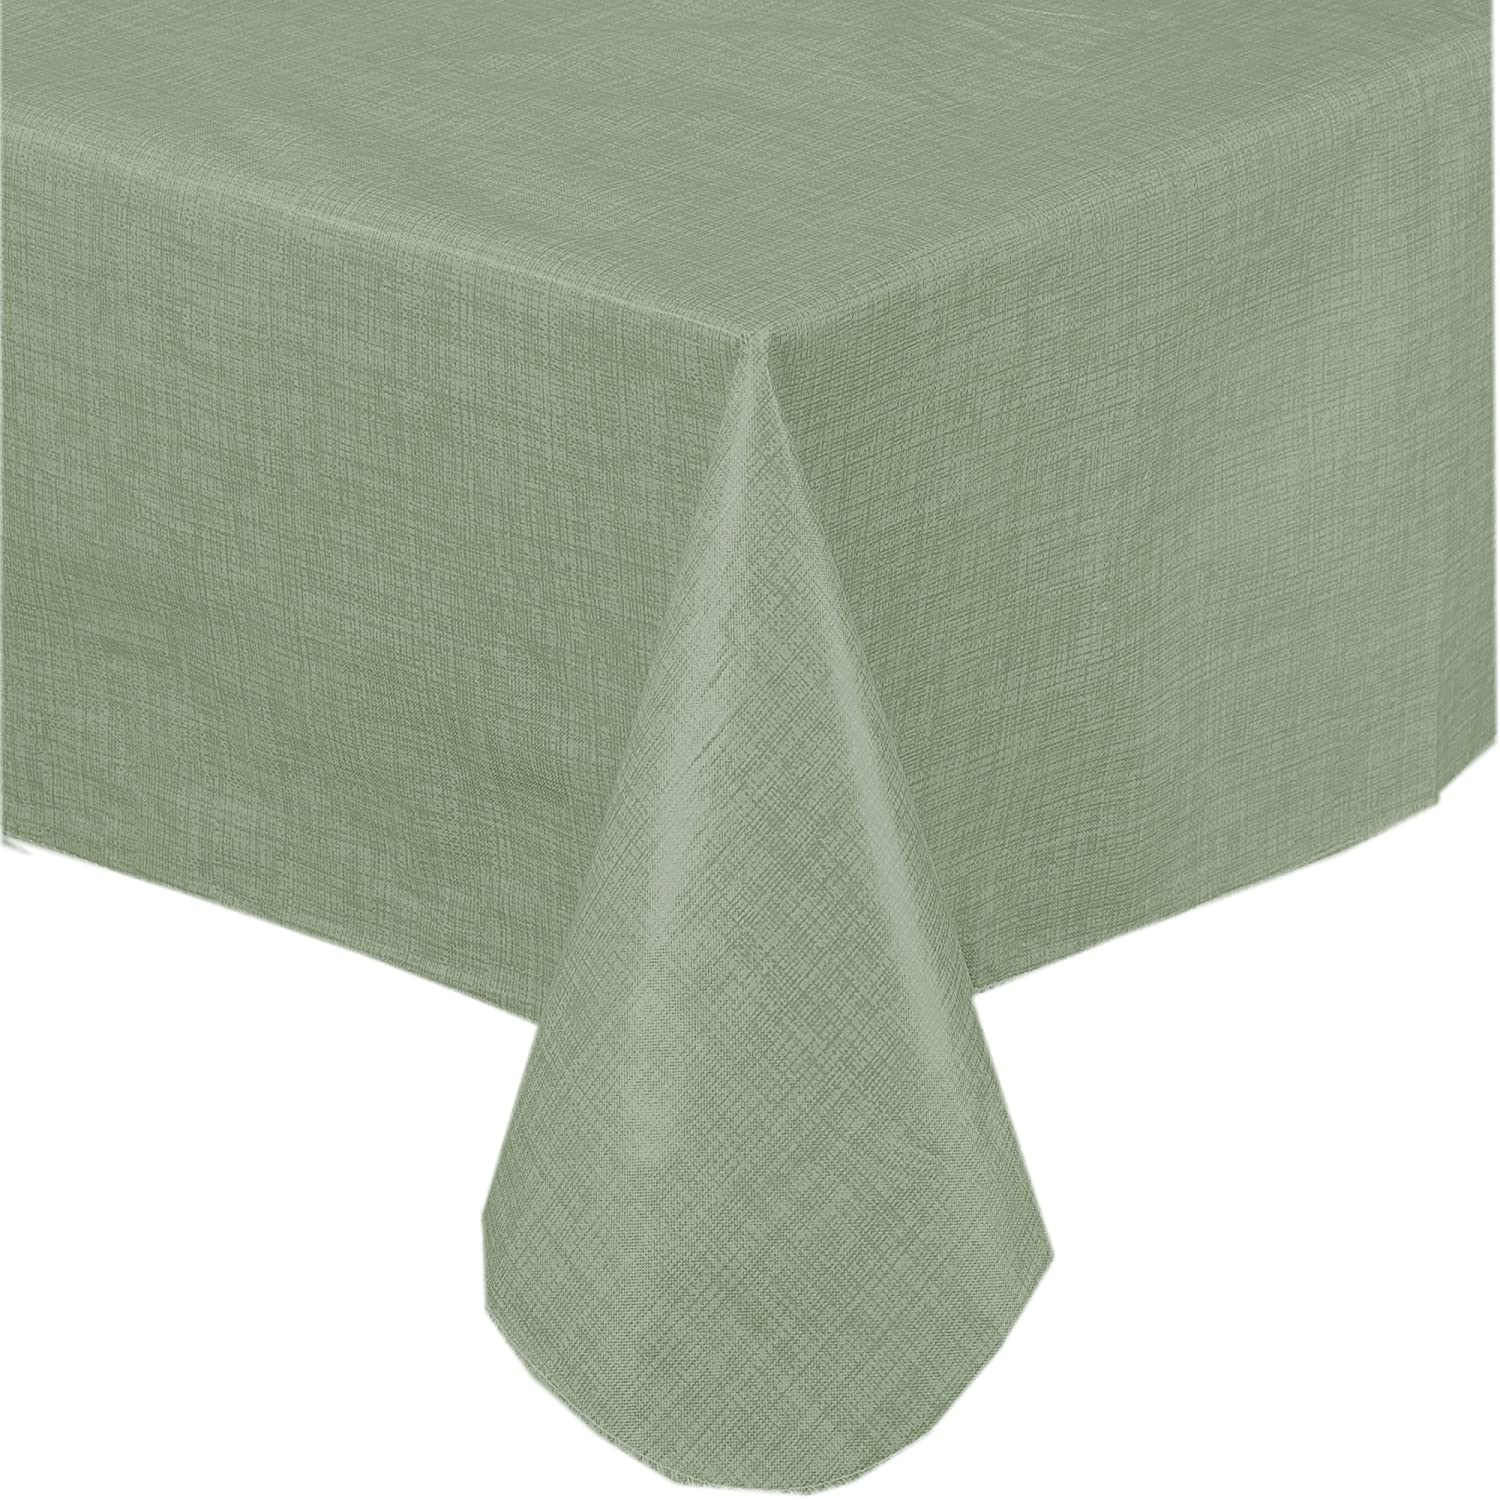 Perfect Amazon.com: Premium Solid Color Vinyl Flannel Backed Tablecloth 52 X 70  Inch Oblong U2013 Sage Green: Home U0026 Kitchen